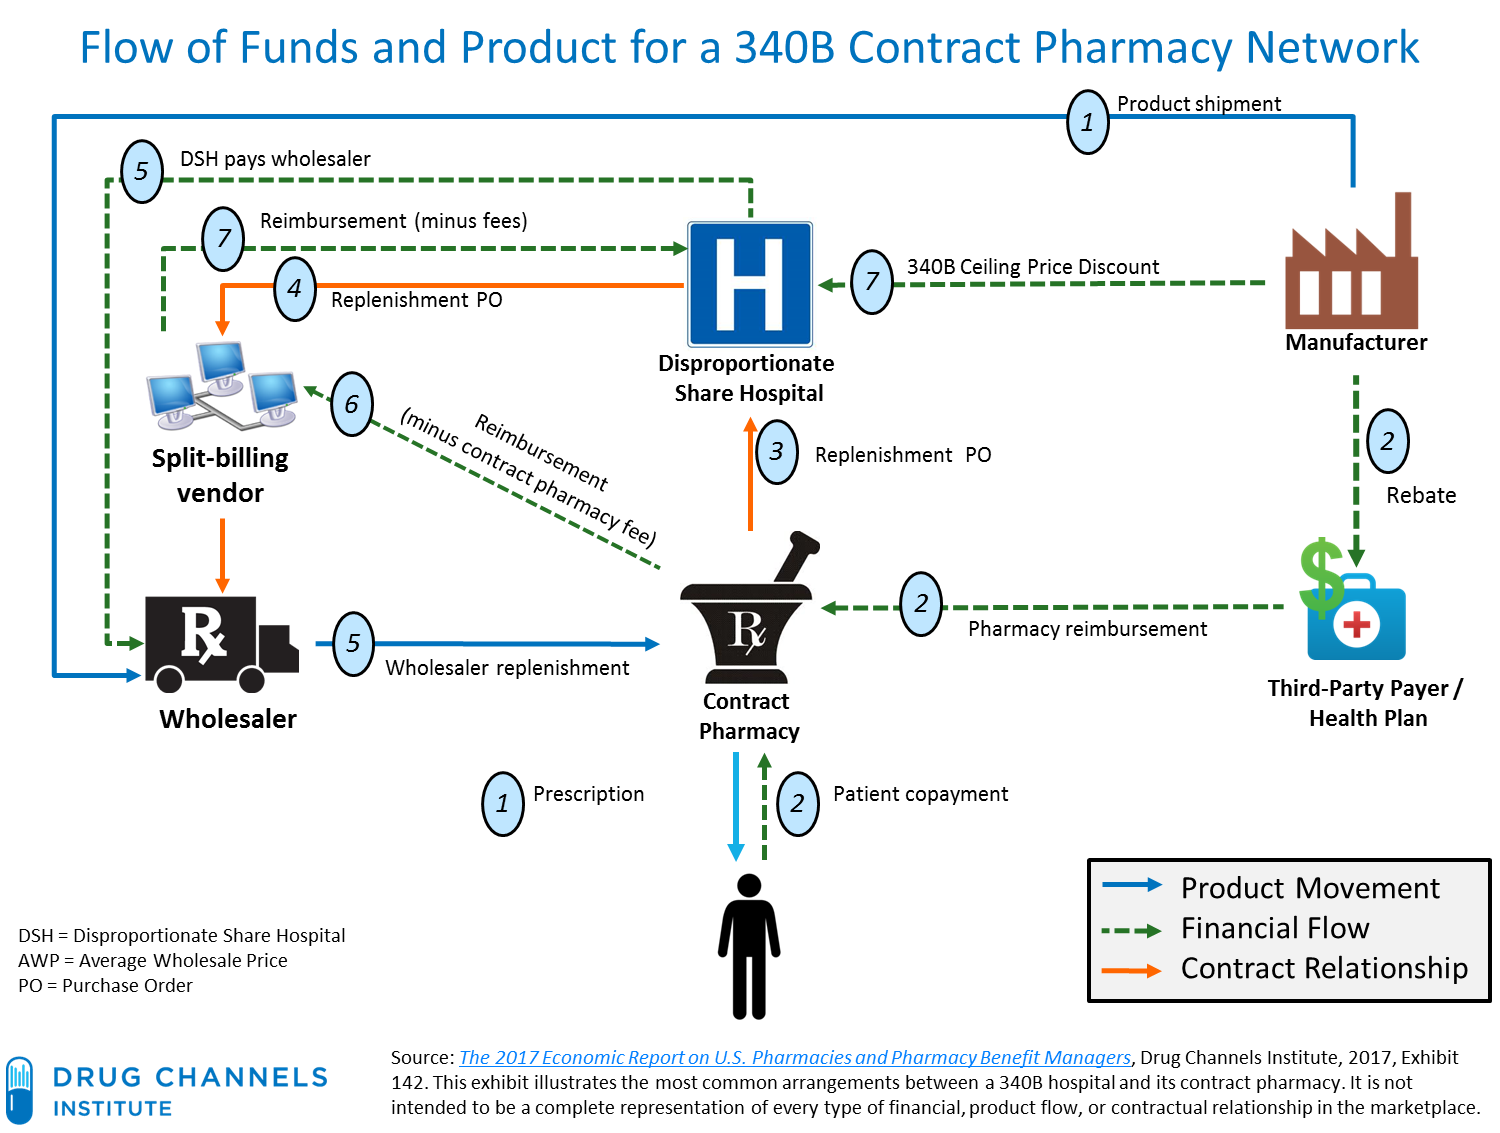 hight resolution of as a 2014 air340b report sensibly recommended contract pharmacies should be located where vulnerable patients qualifying for assistance live